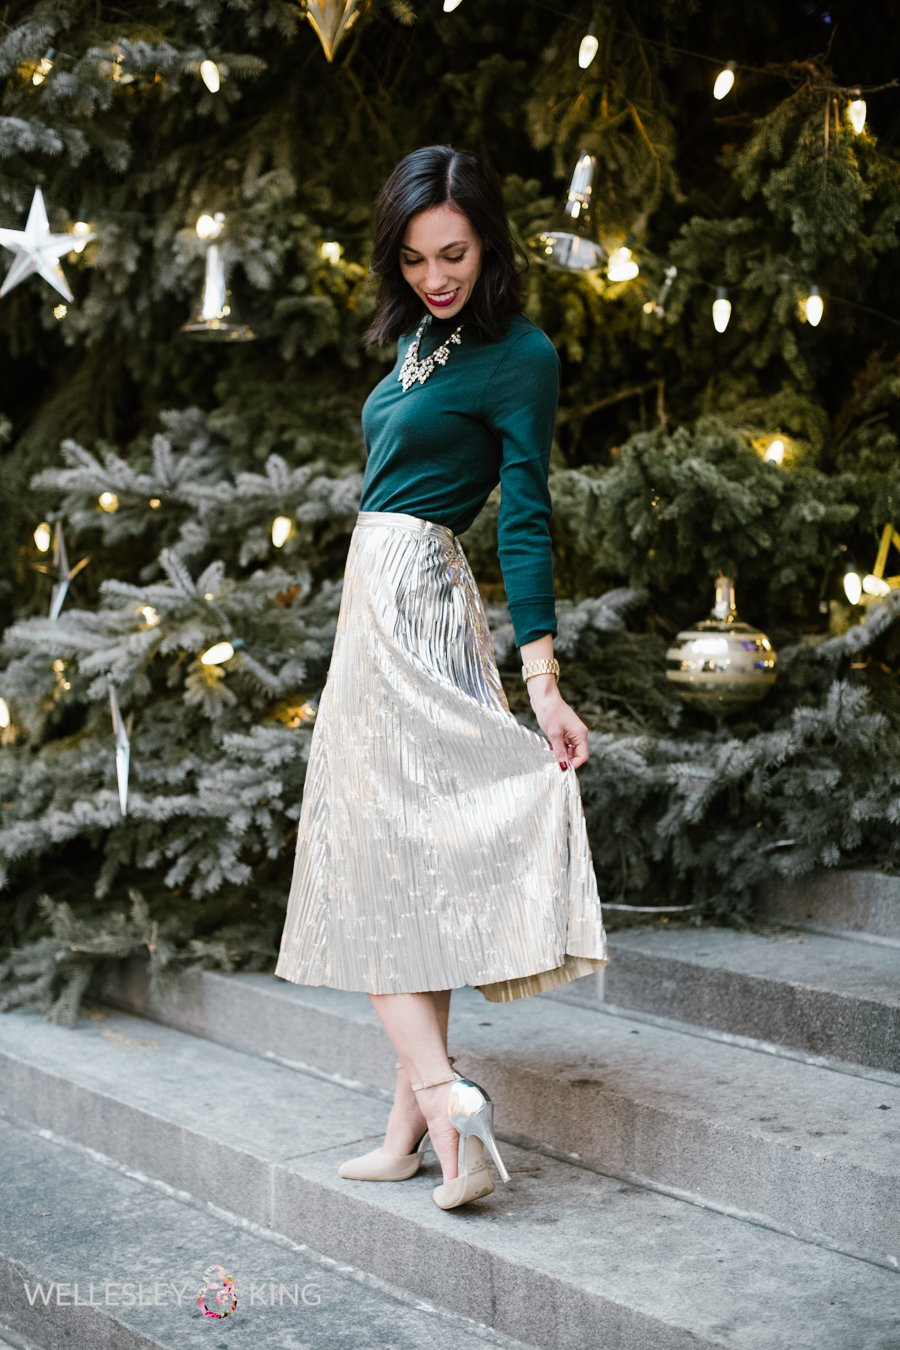 Fashion | Style | J.Crew | holiday dinner party-@wellesleynking-wellesley and king | Wardrobe Etiquette for Your Holiday Office Party Outfit featured by top Pittsburgh fashion blog Wellesley & King